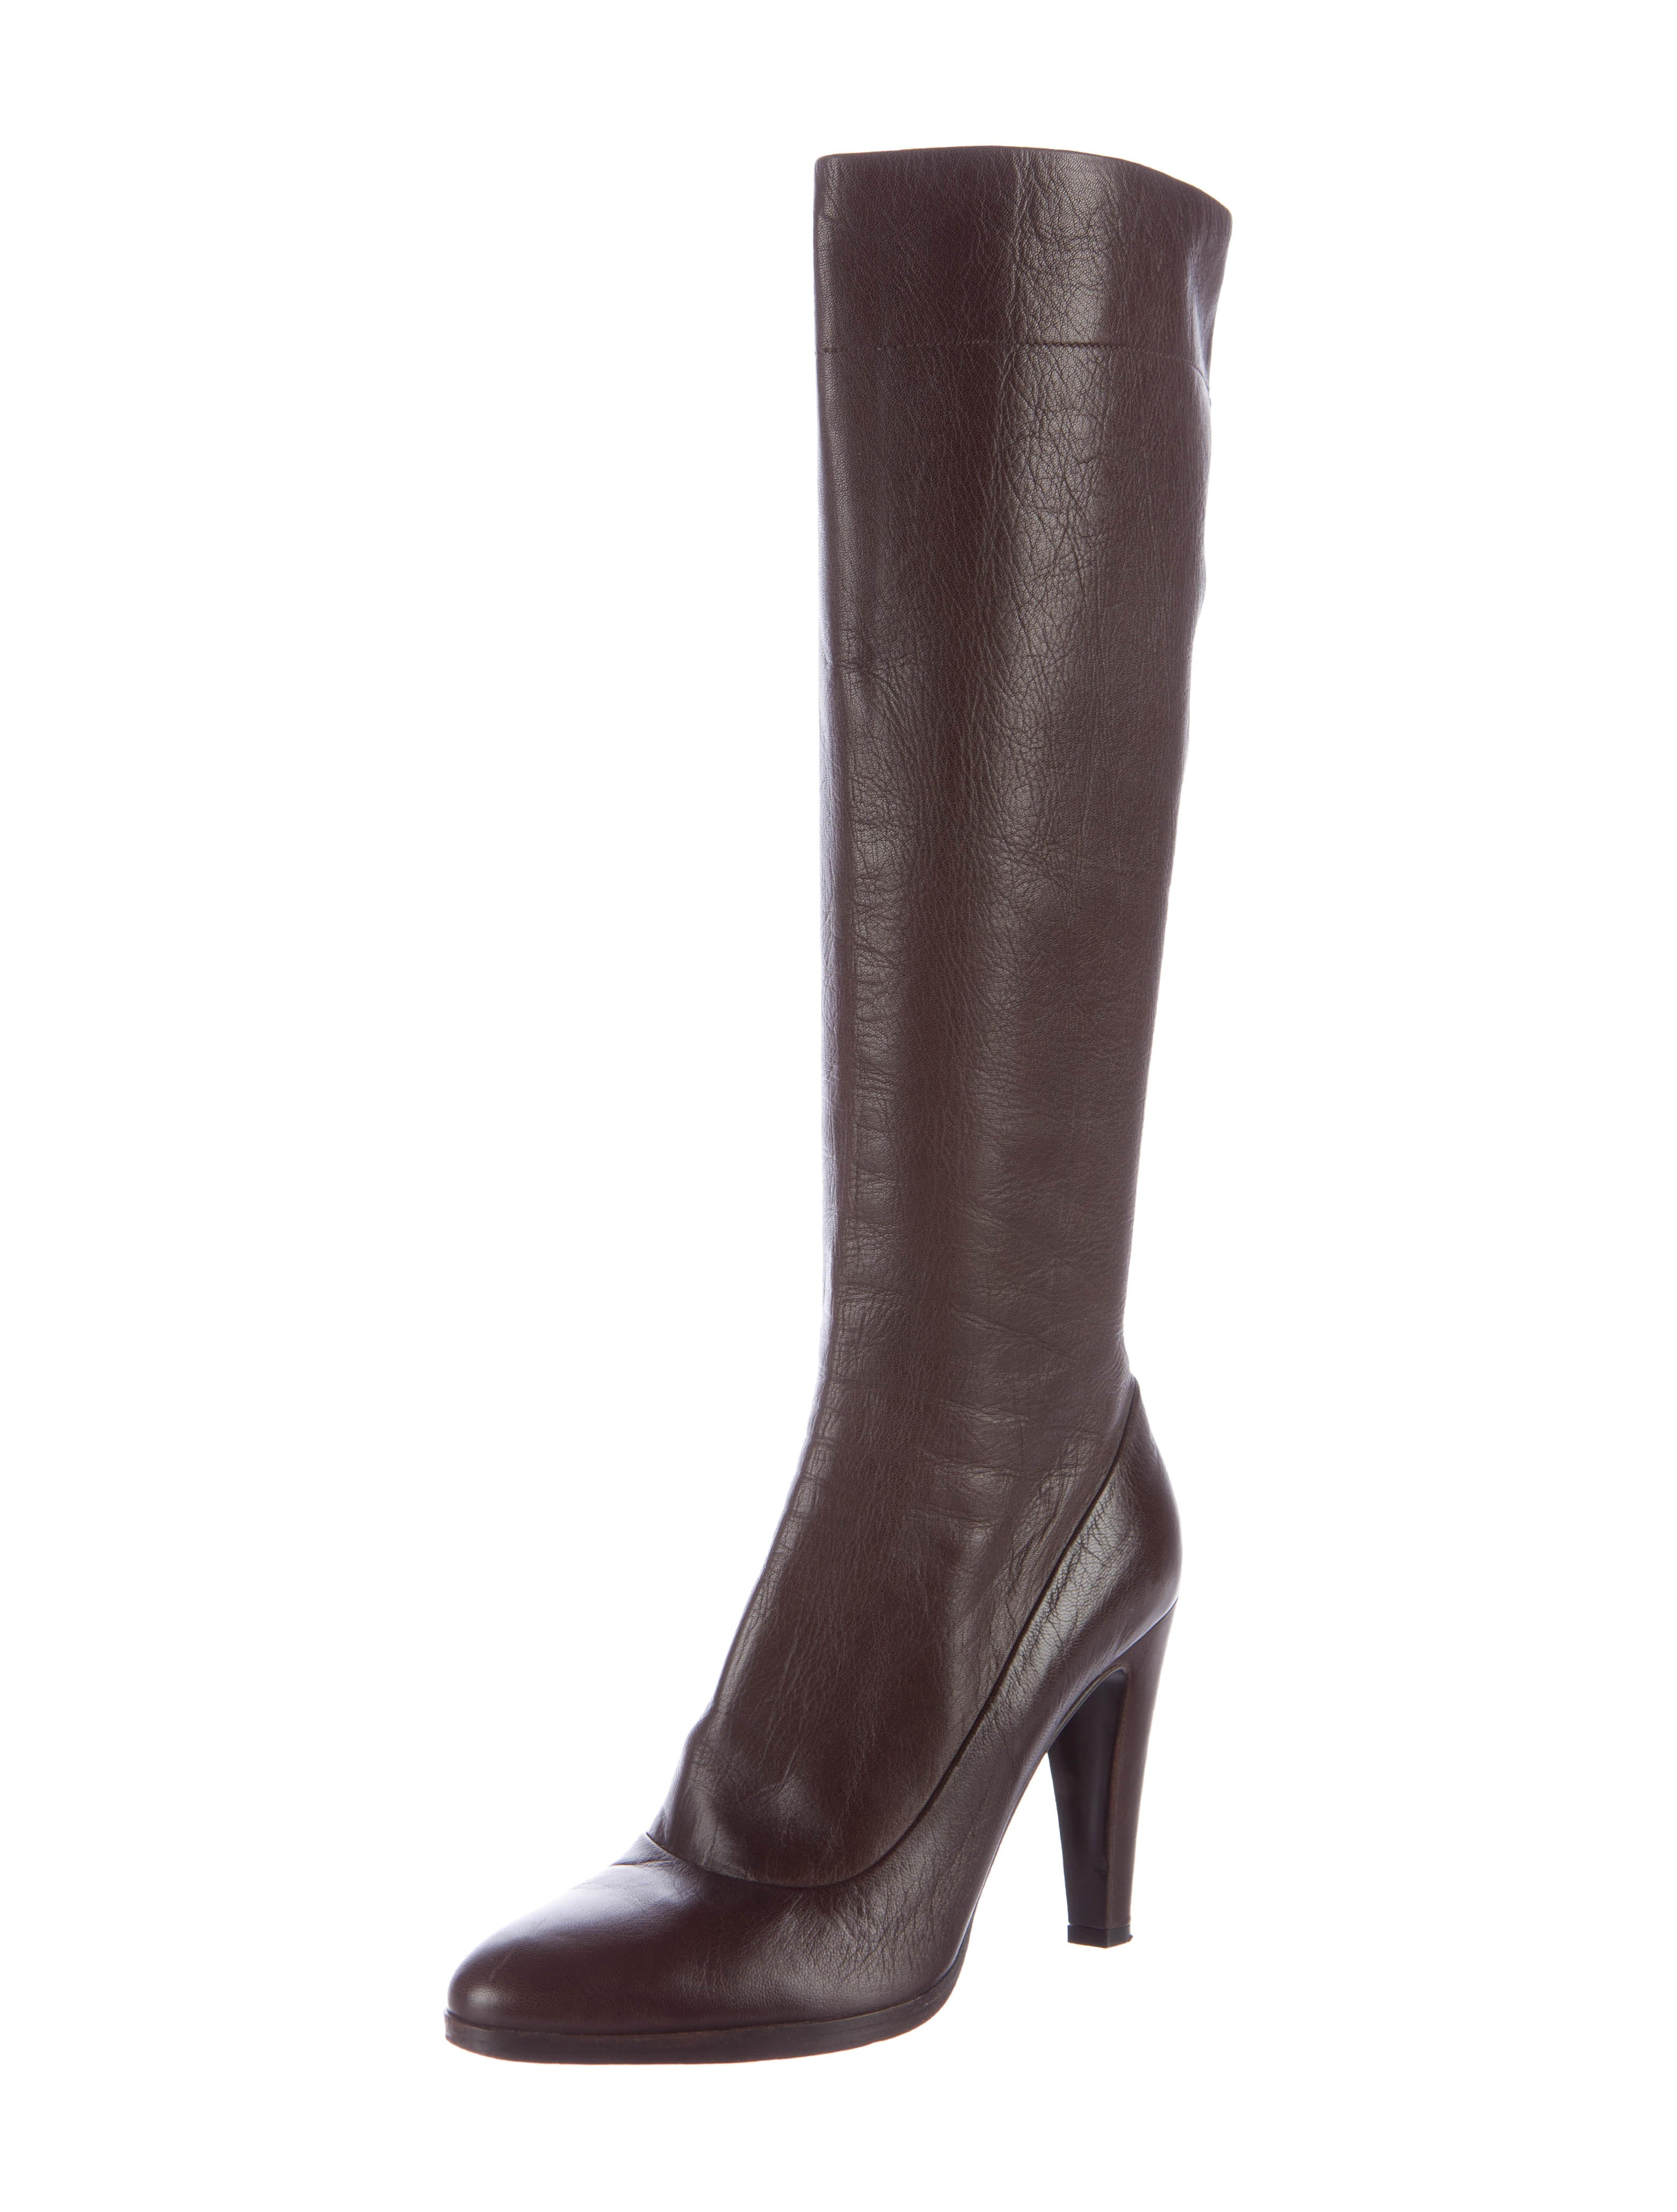 prada leather knee high boots shoes pra144880 the